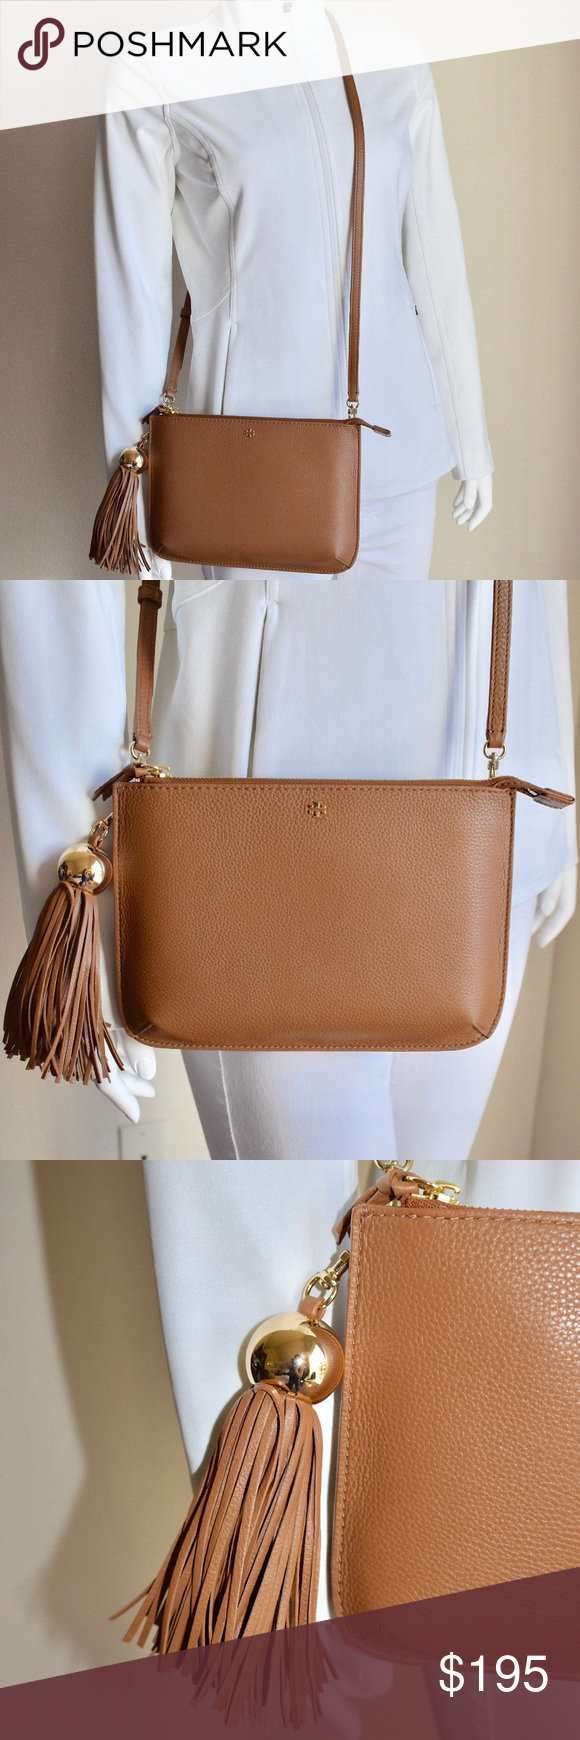 TORY BURCH TASSEL CROSSBODY BAG 💎Brand New with Tag and Authentic👍 💎Same  day 4cb84447b3